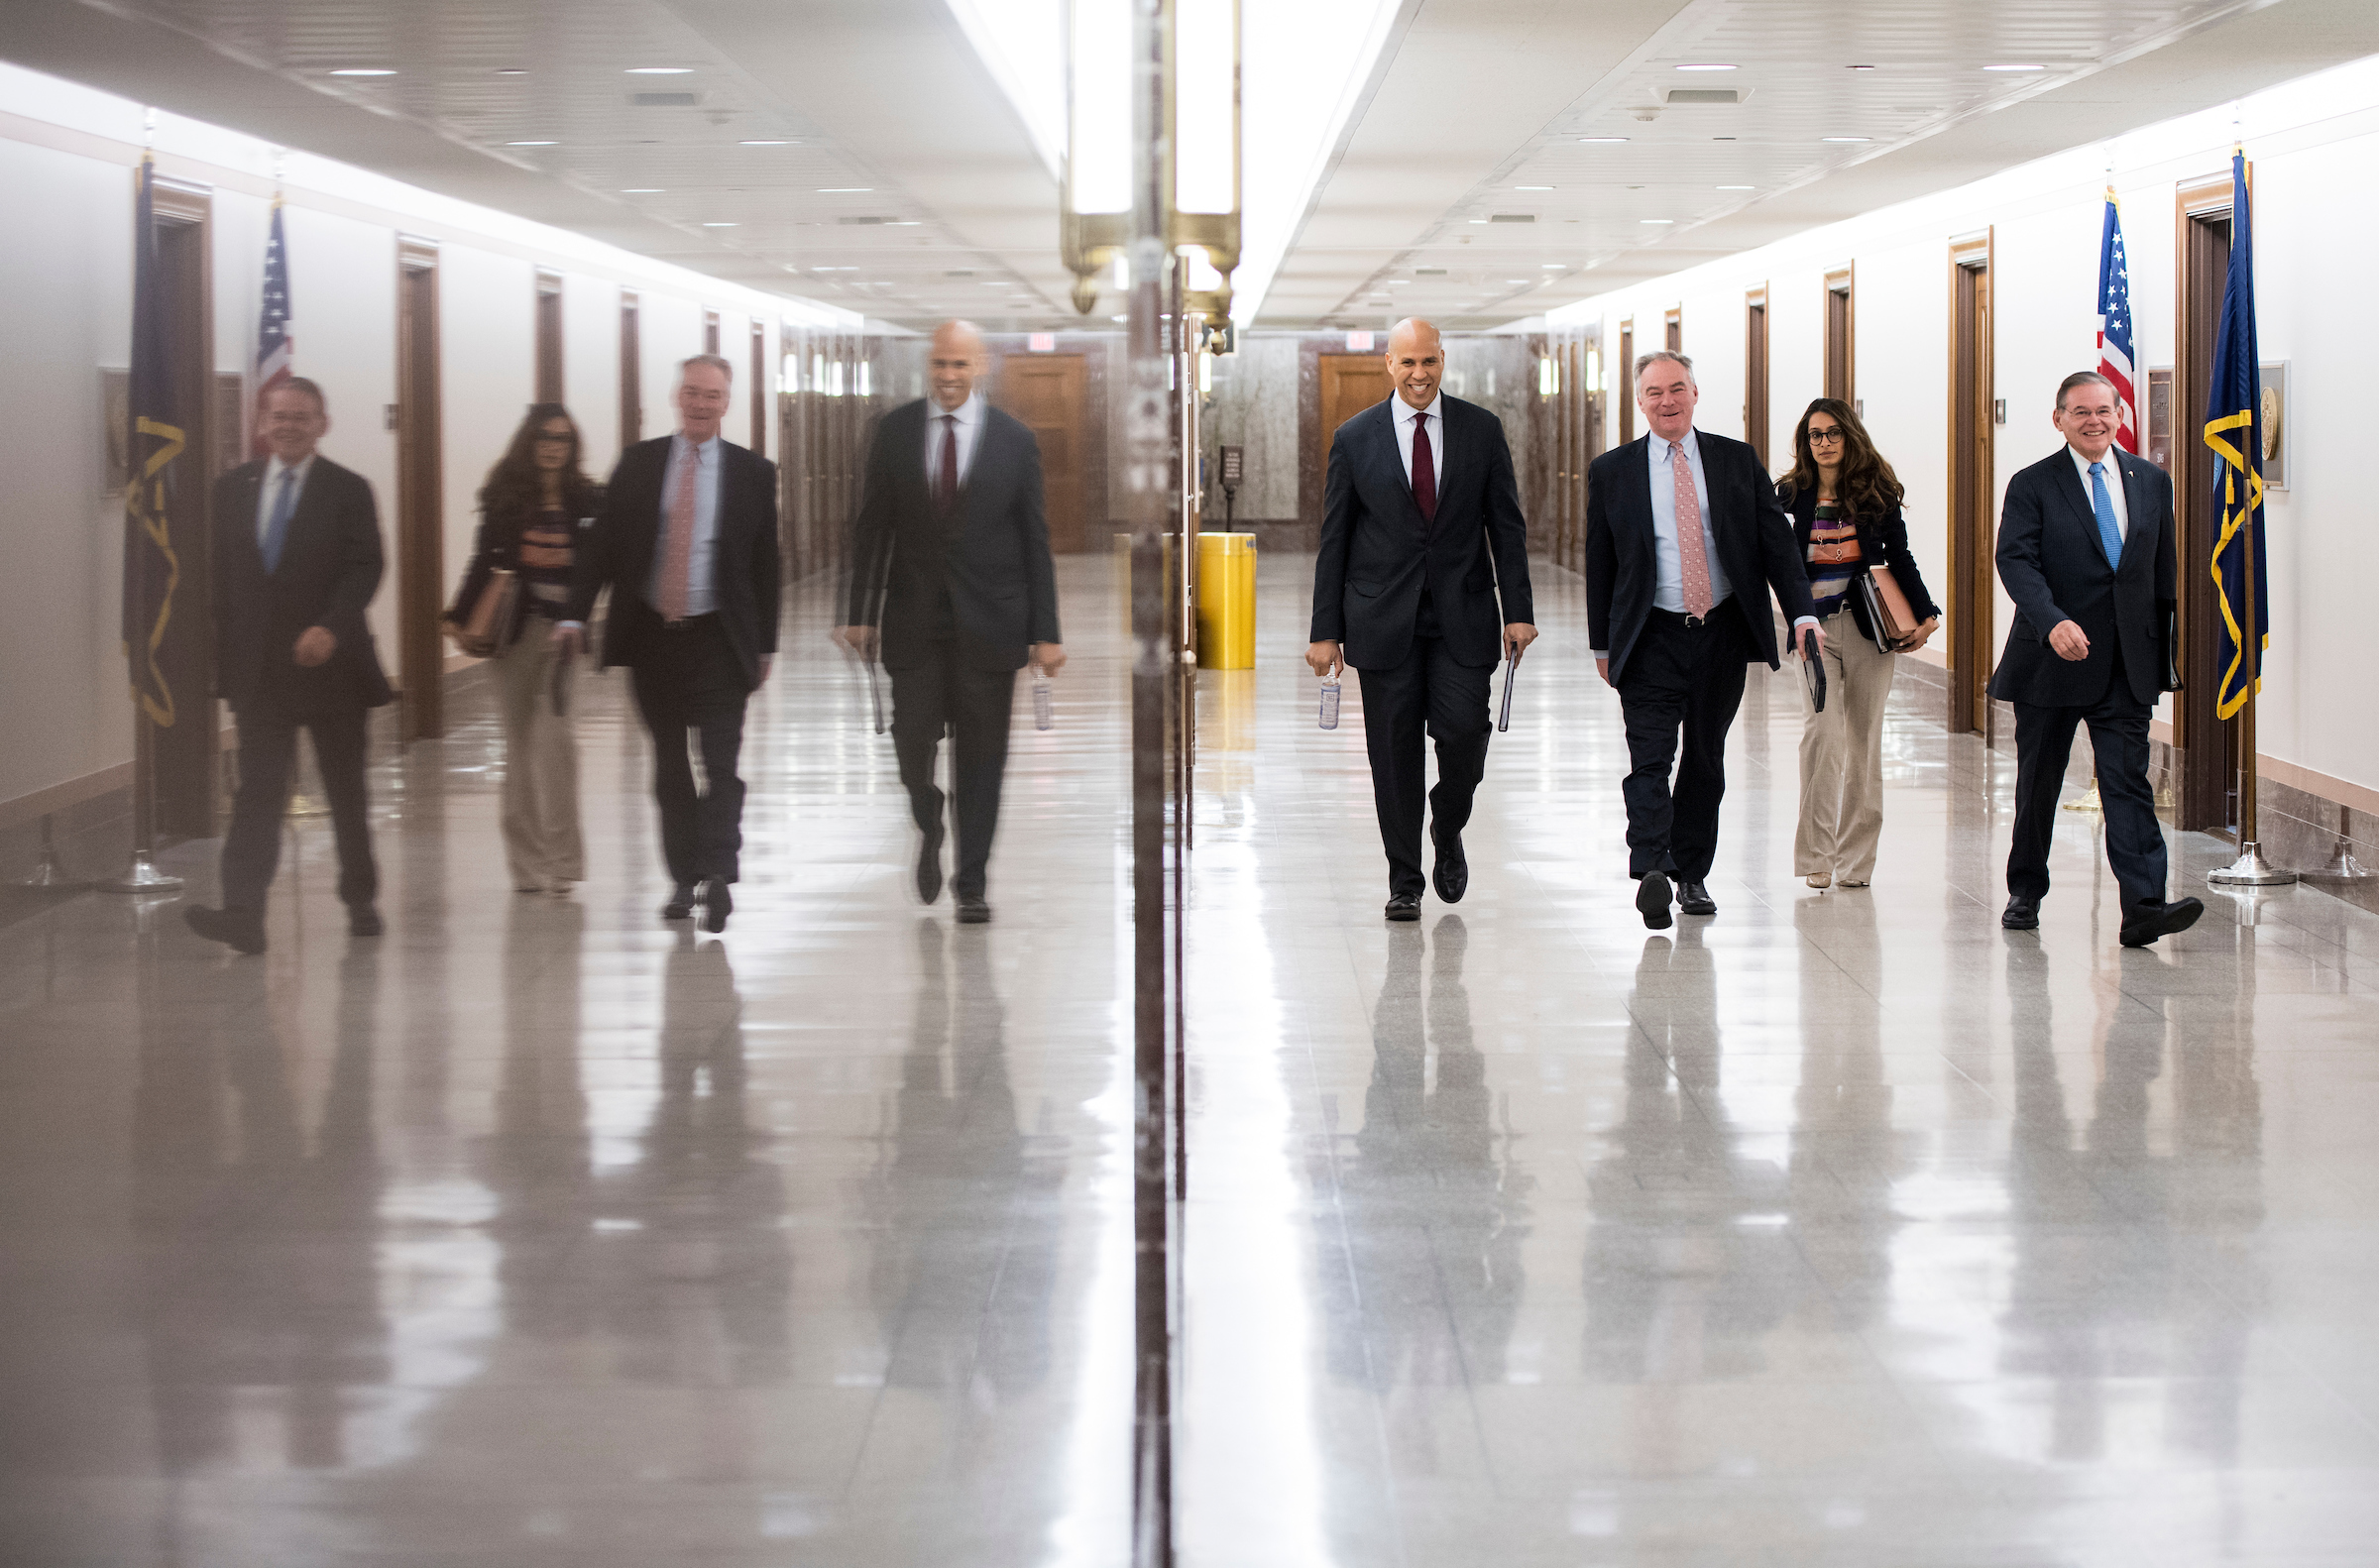 UNITED STATES - FEBRUARY 6: From left, Sen. Cory Booker, D-N.J., Sen. Tim Kaine, D-Va., and Sen. Bob Menendez, D-N.J., walk to their morning committee hearing in the Dirksen Senate Office Building on Tuesday, Feb. 6, 2018. (Photo By Bill Clark/CQ Roll Call)